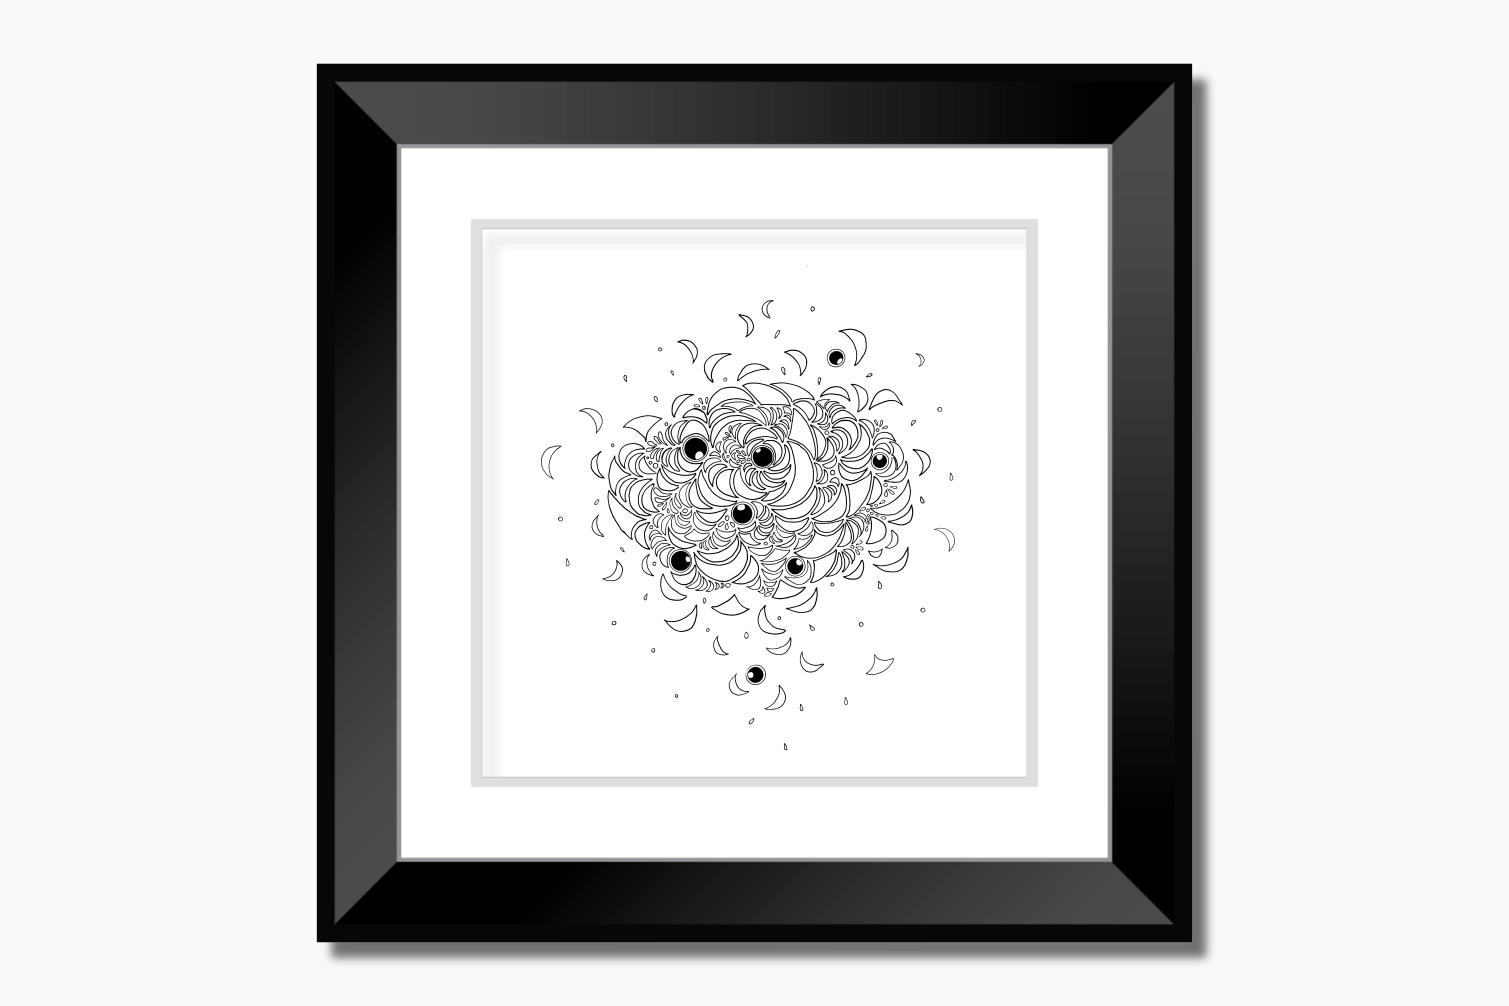 Abstract Illustration Black and White, A1, SVG example image 9